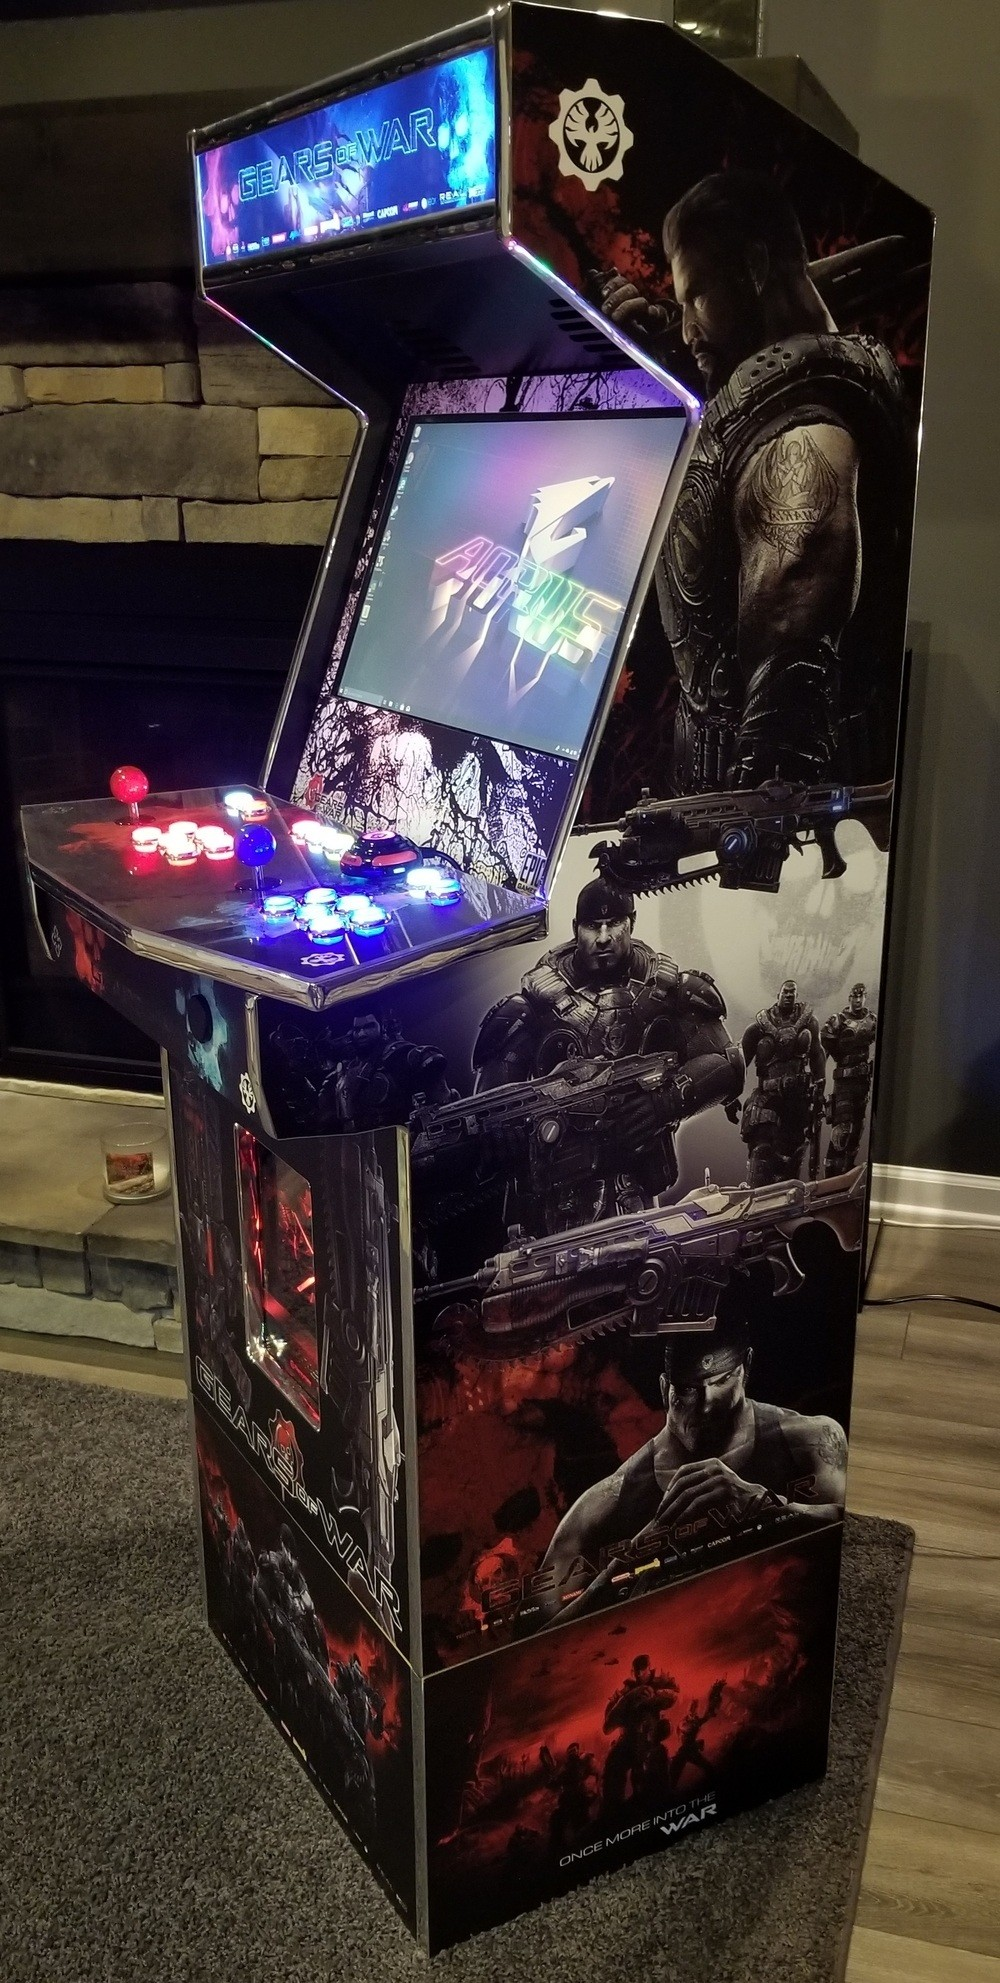 Level Up 3 4 Size Arcade Cabinet Kit For 22 Monitor